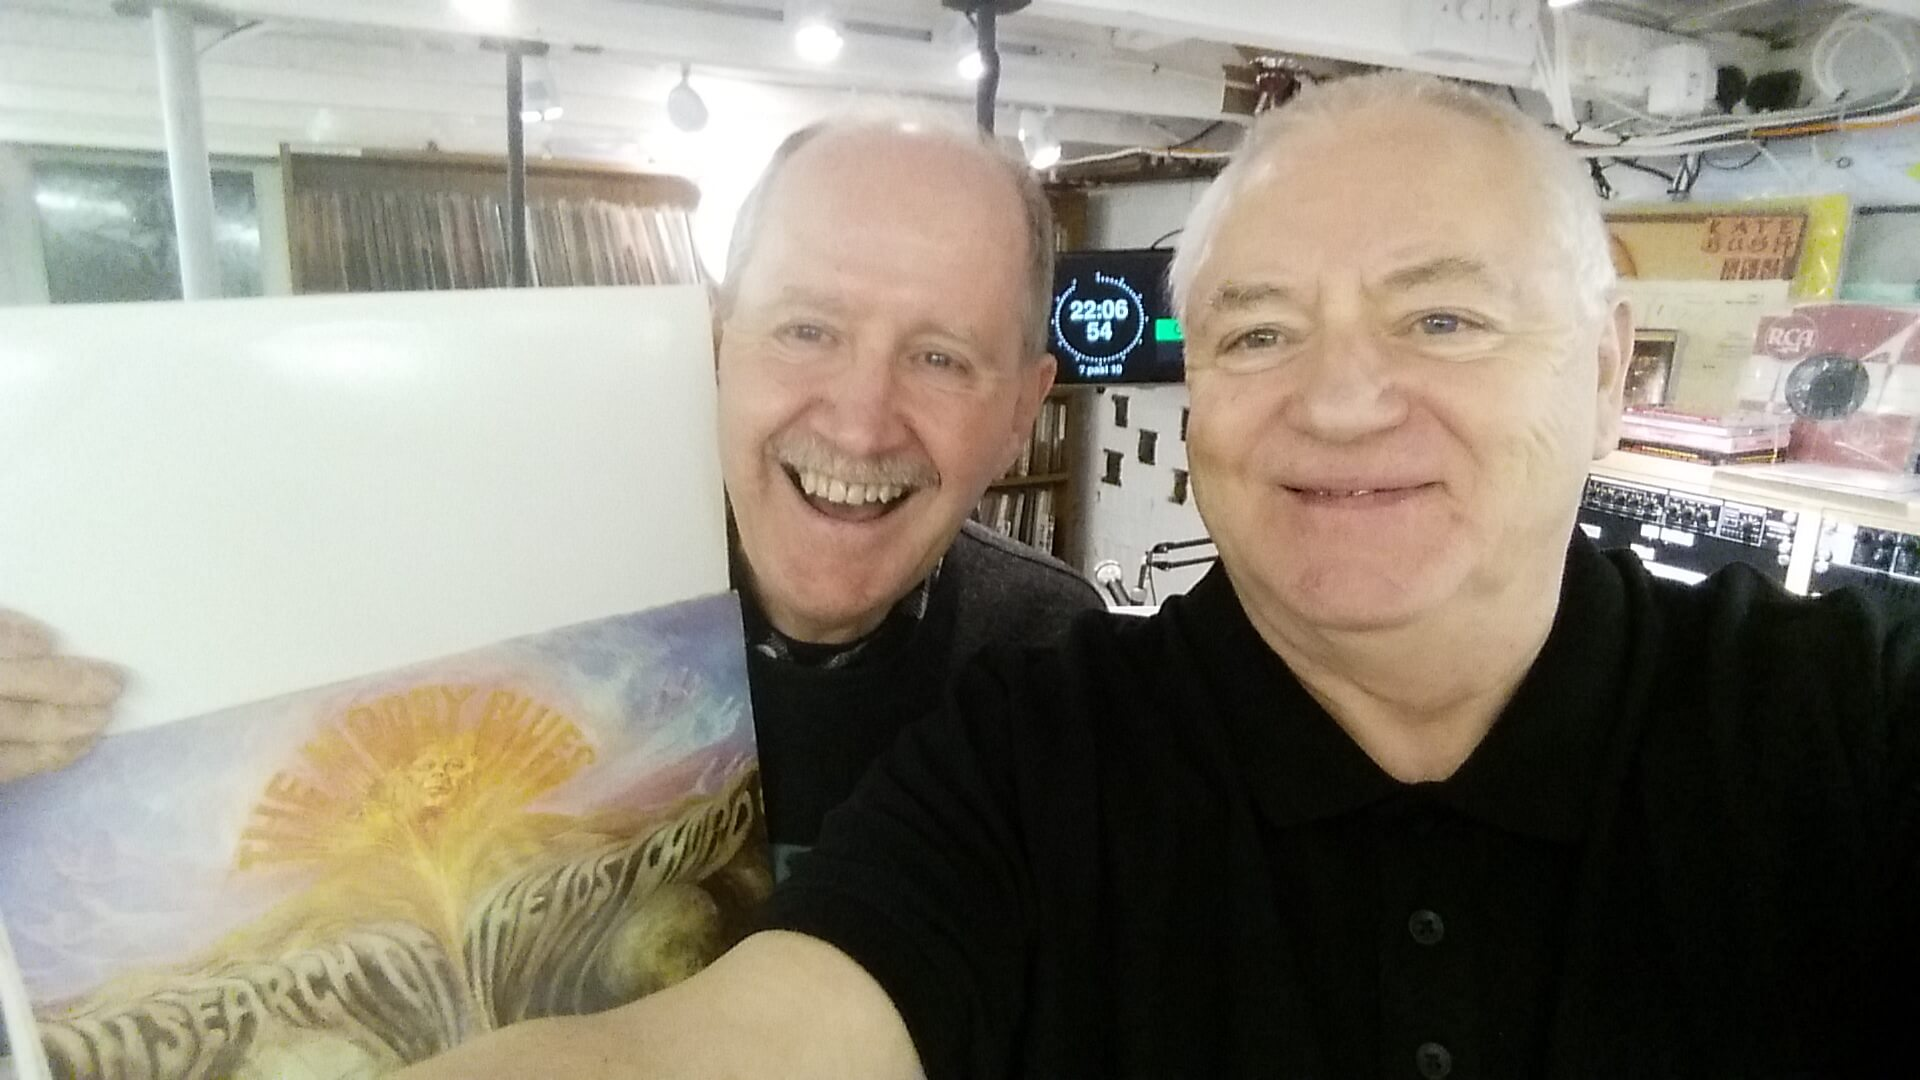 Robbie Owen & Mike Grant at the Magic Echo Studio, March 2018